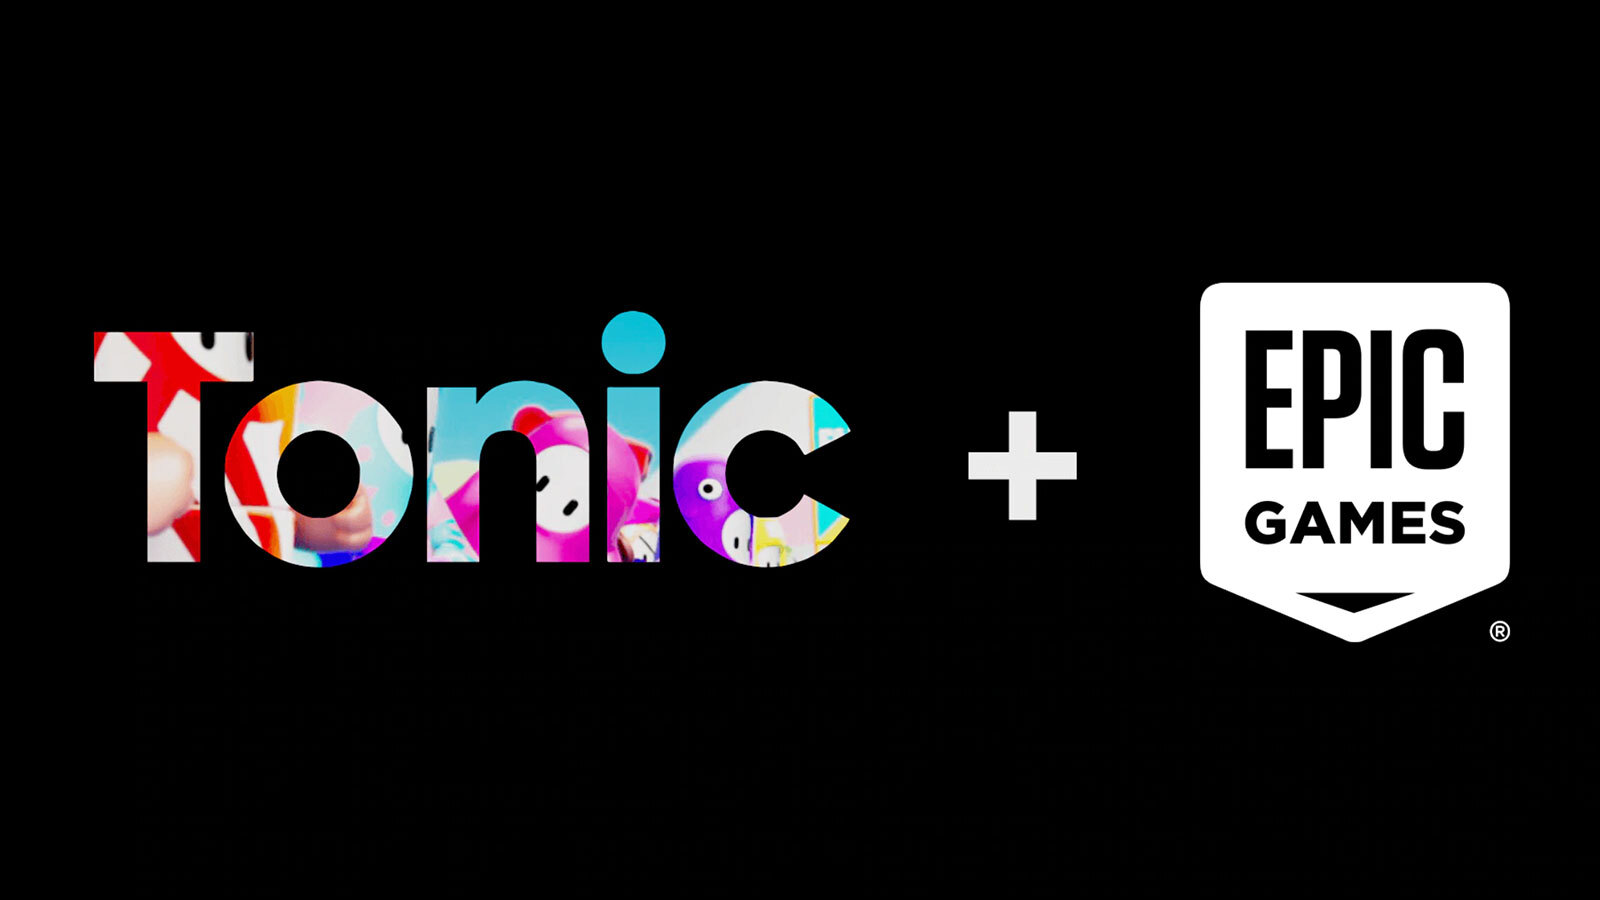 tonic epic games